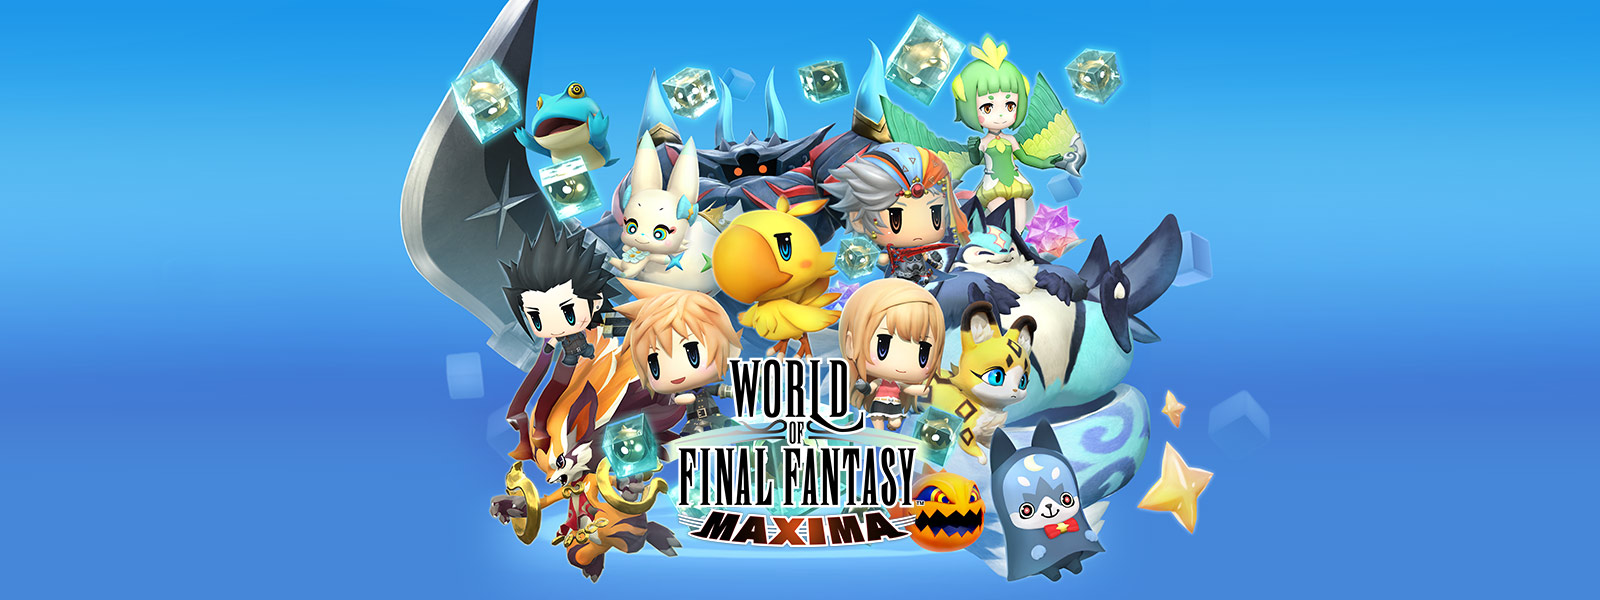 WORLD OF FINAL FANTASY MAXIMA, Characters jumping out from the center of the screen